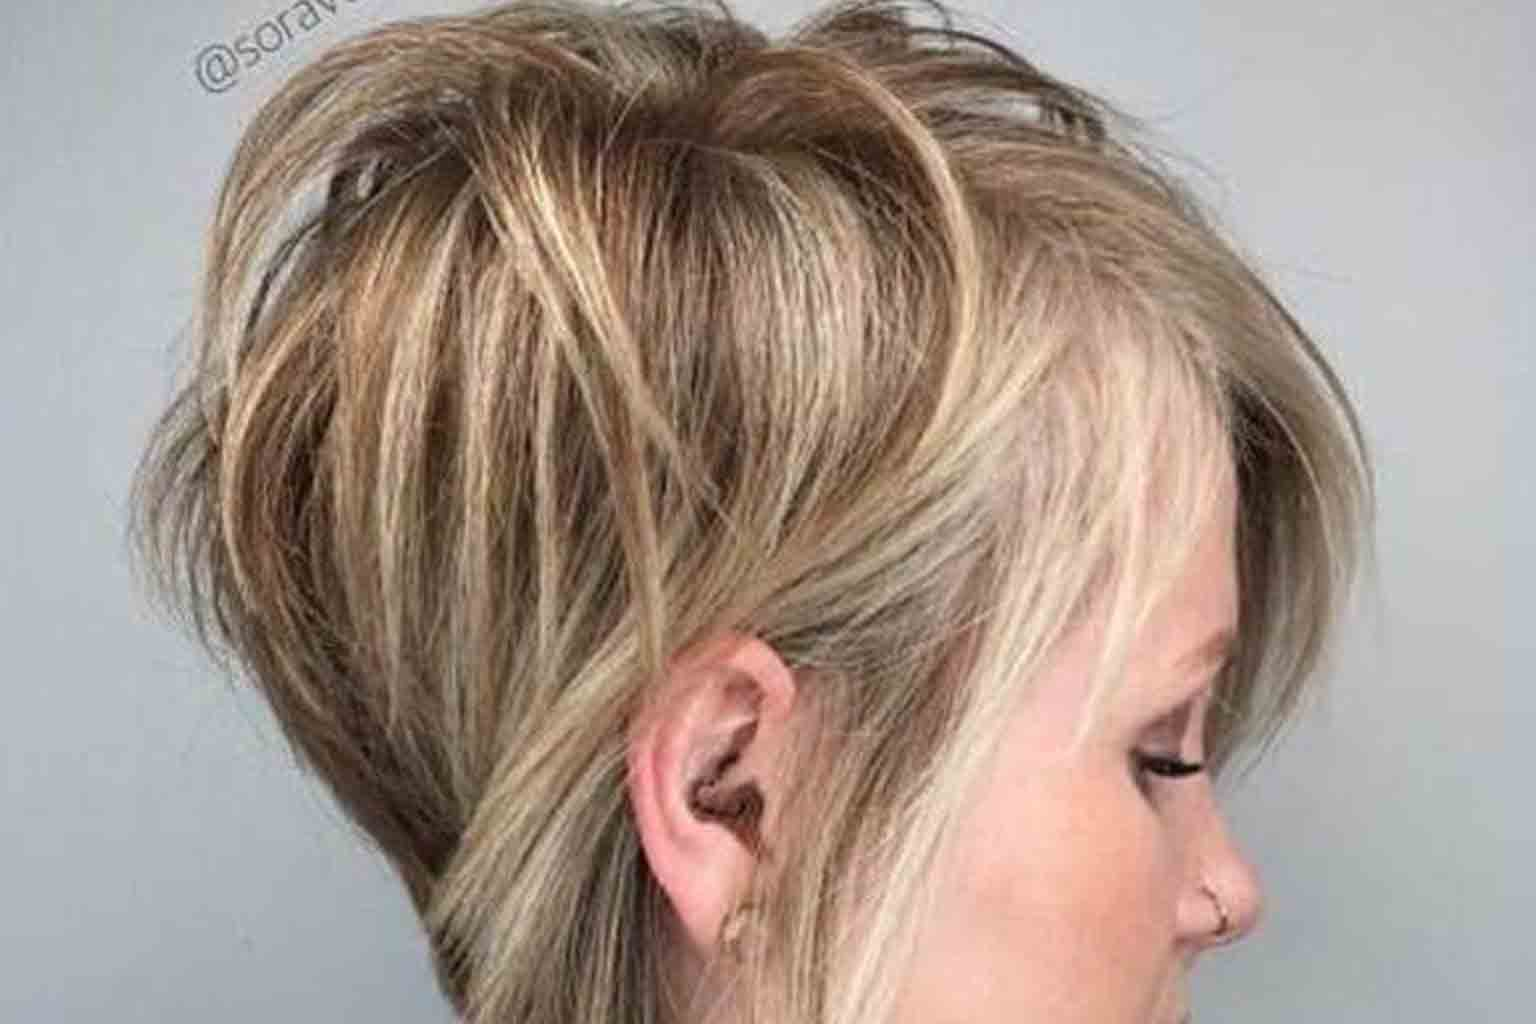 10 Trending Bob Hairstyles You've Got To Try % - % The Voice Of Woman